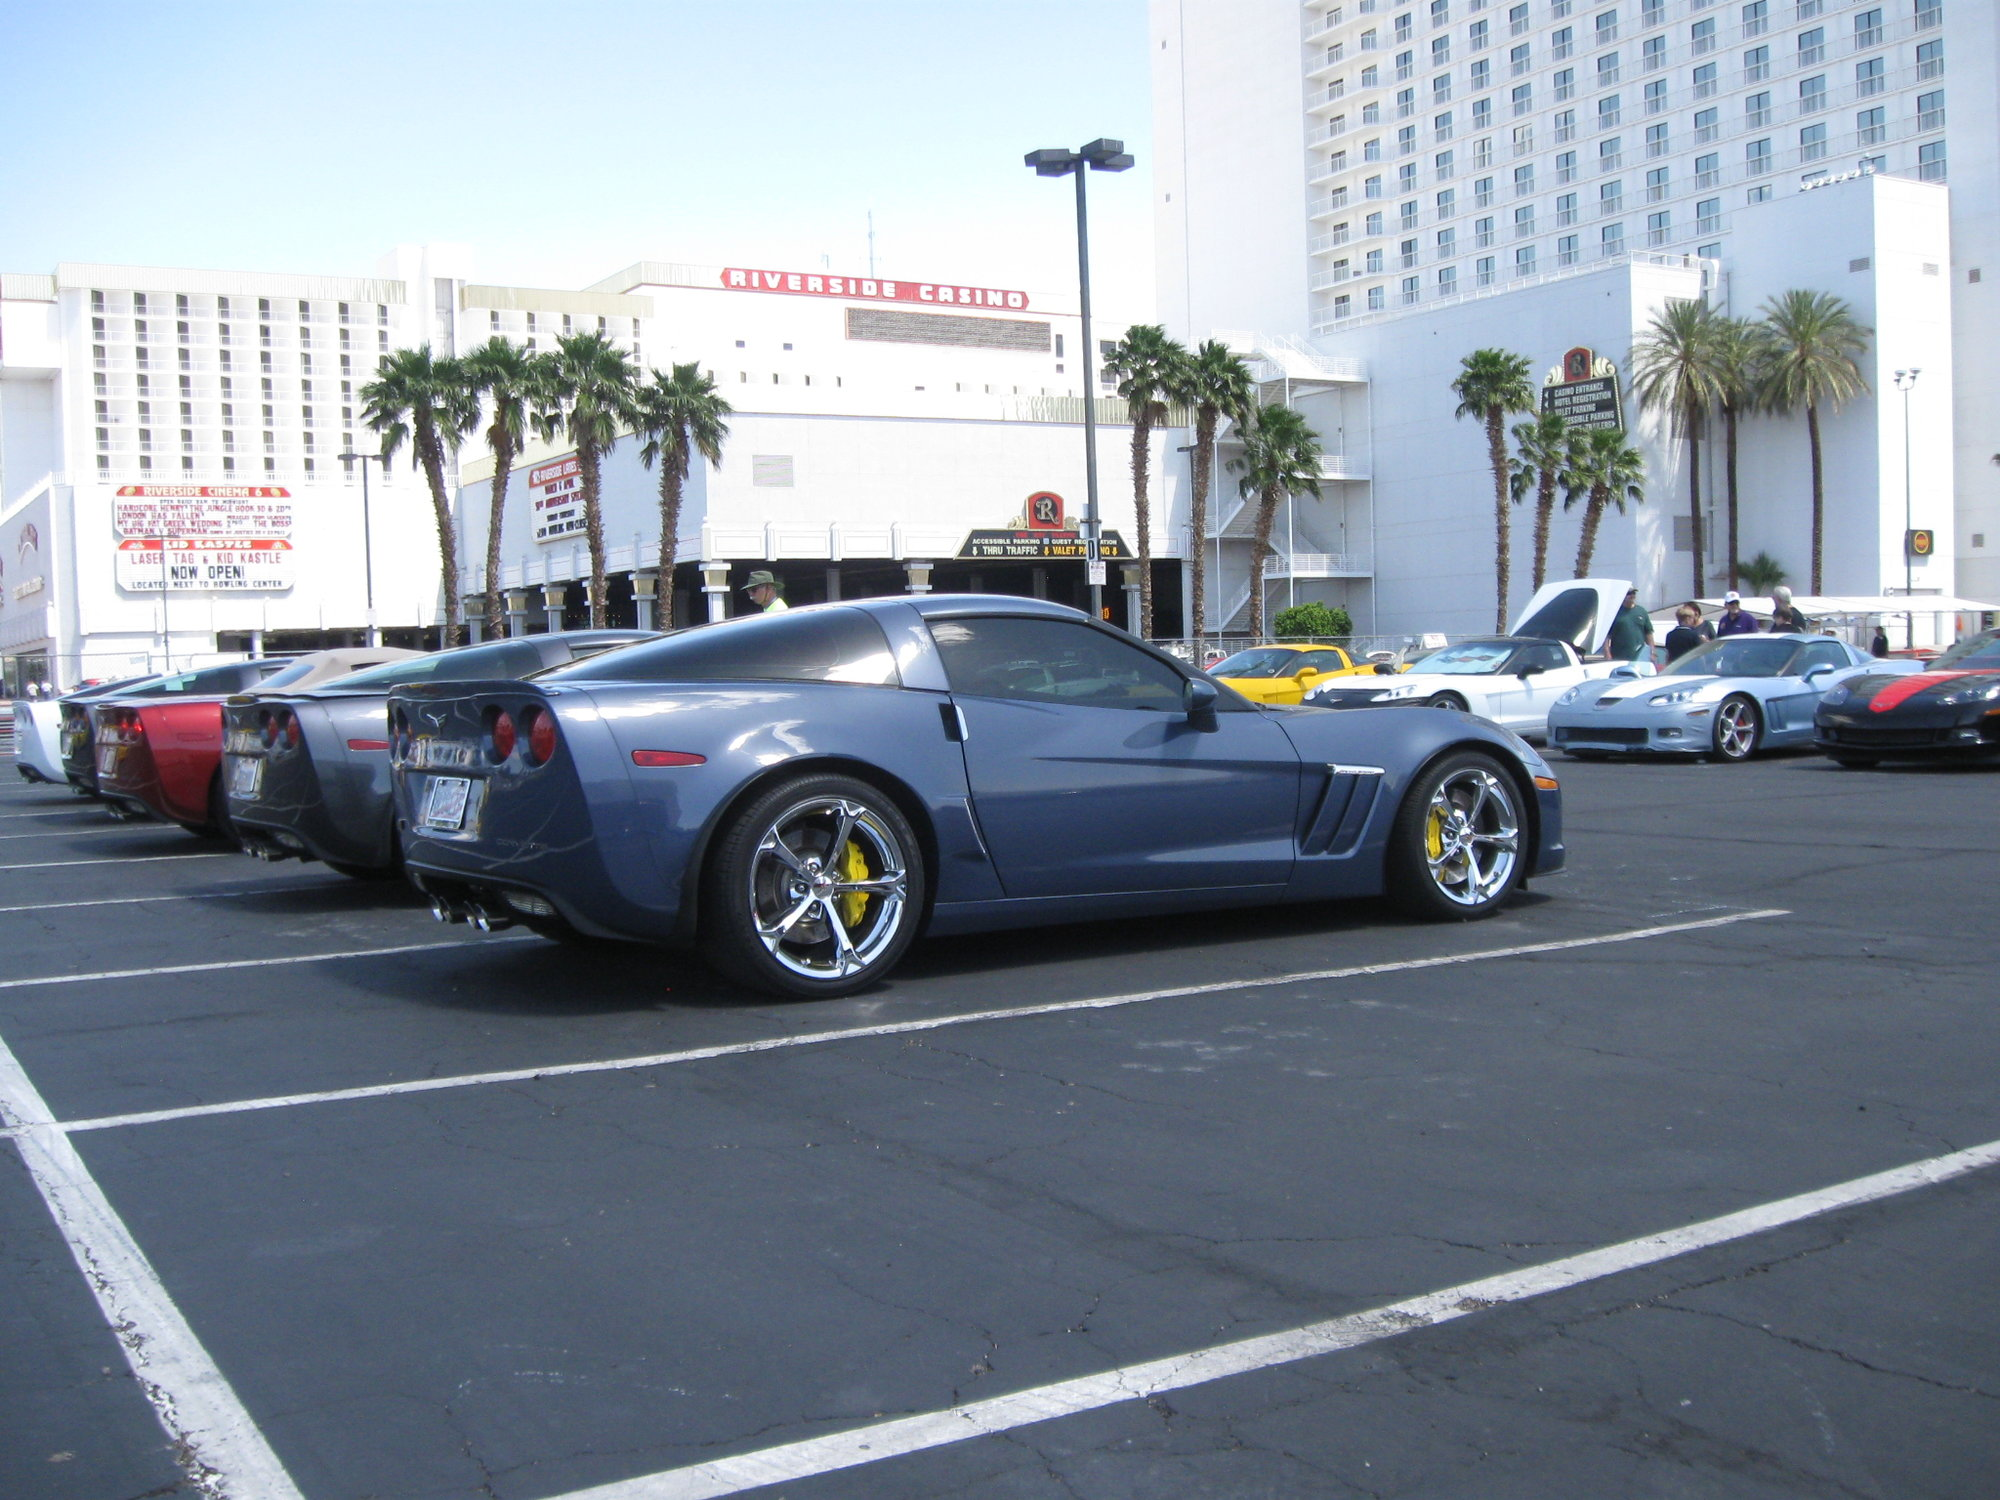 Gamblers Corevtte Gathering in Laughlin Nv ...